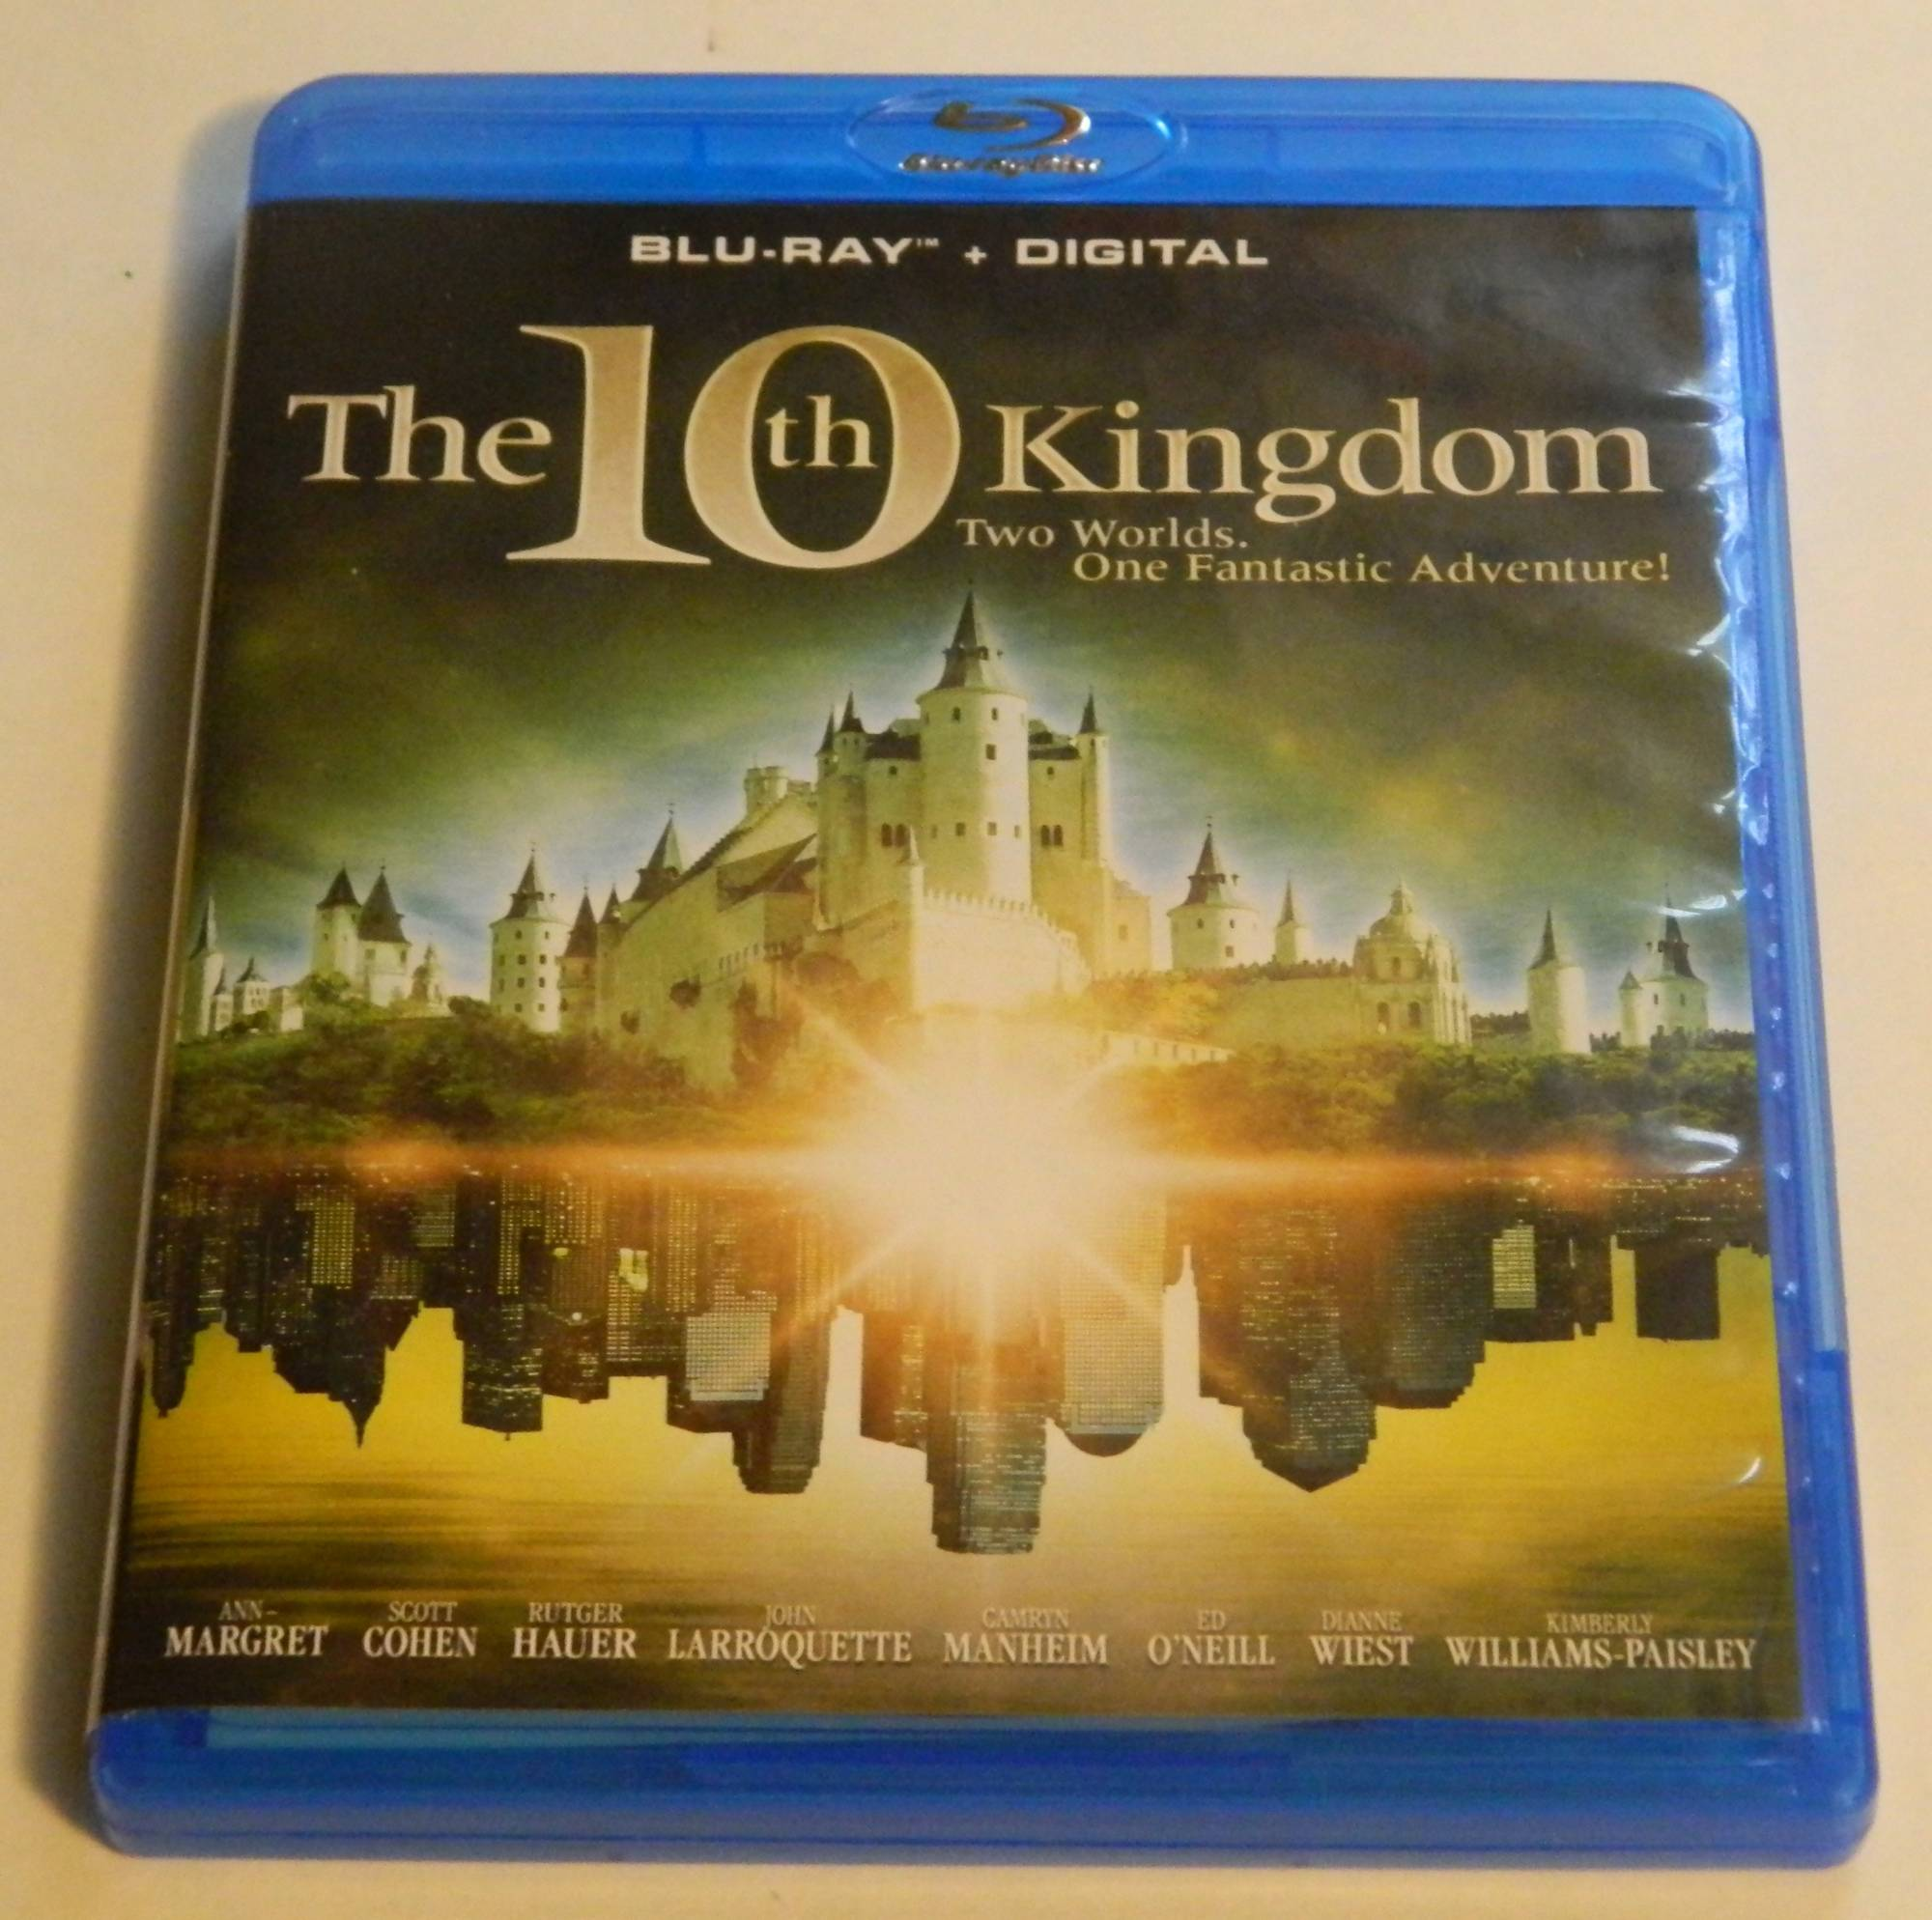 The 10th Kingdom Blu-Ray